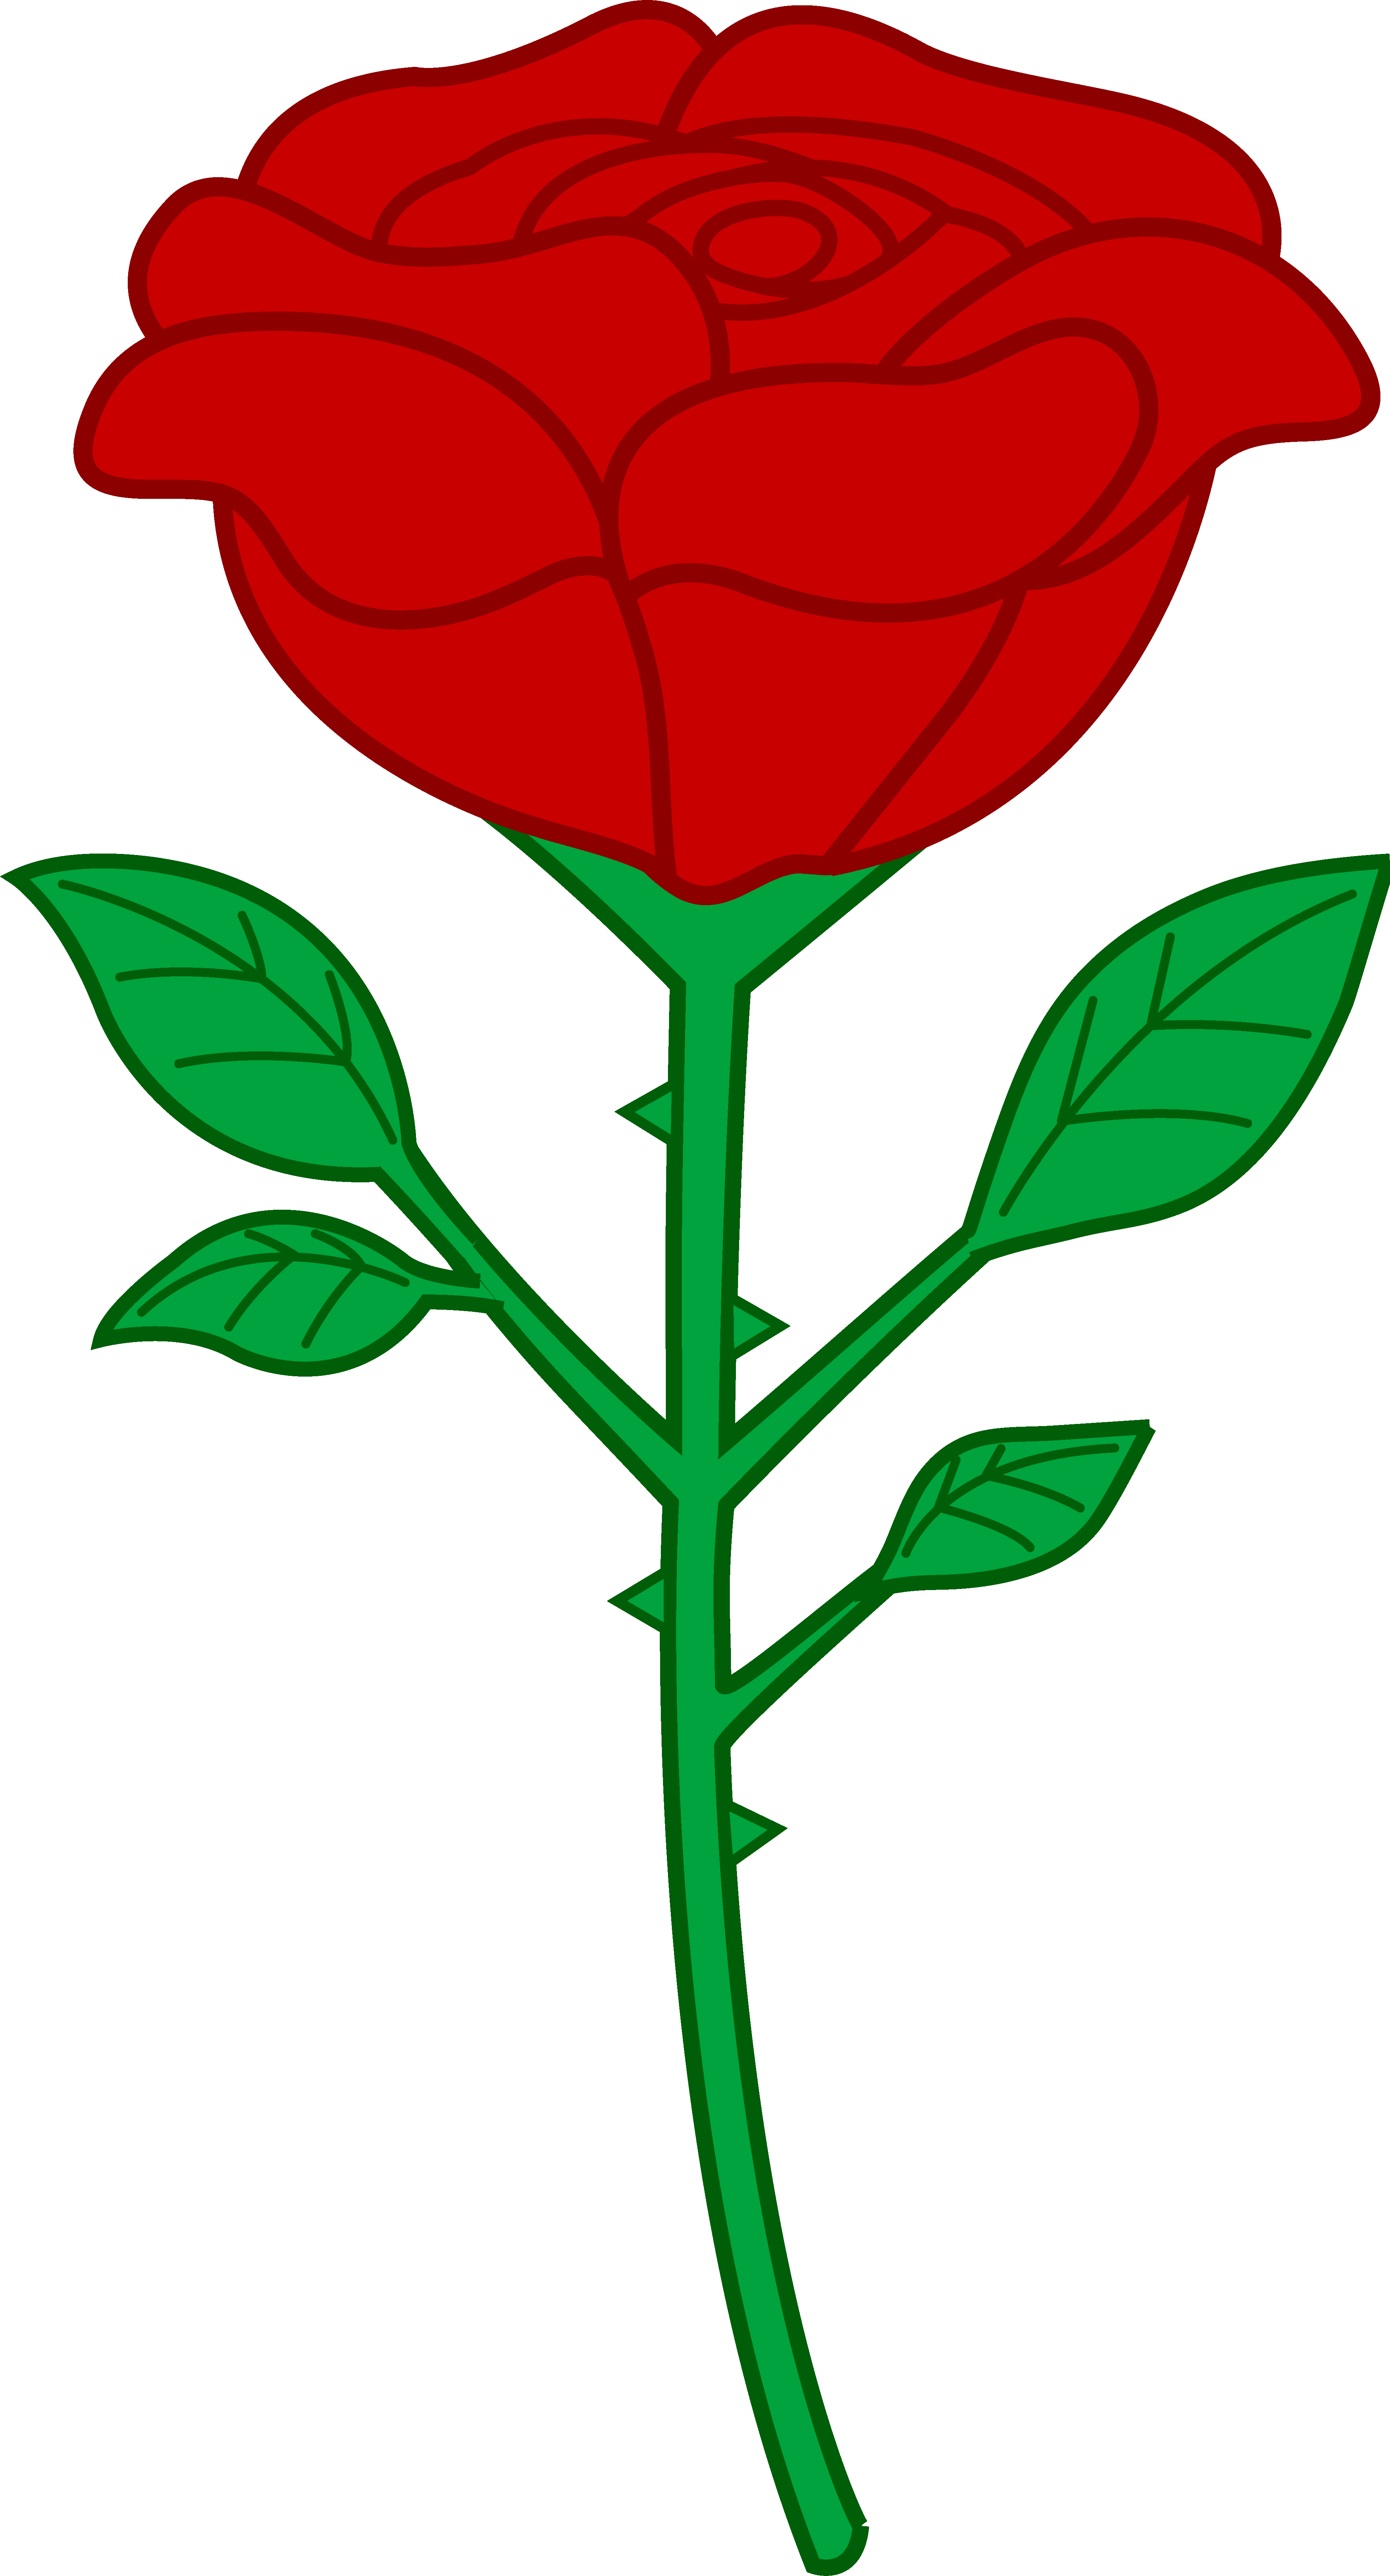 Free single rose clipart